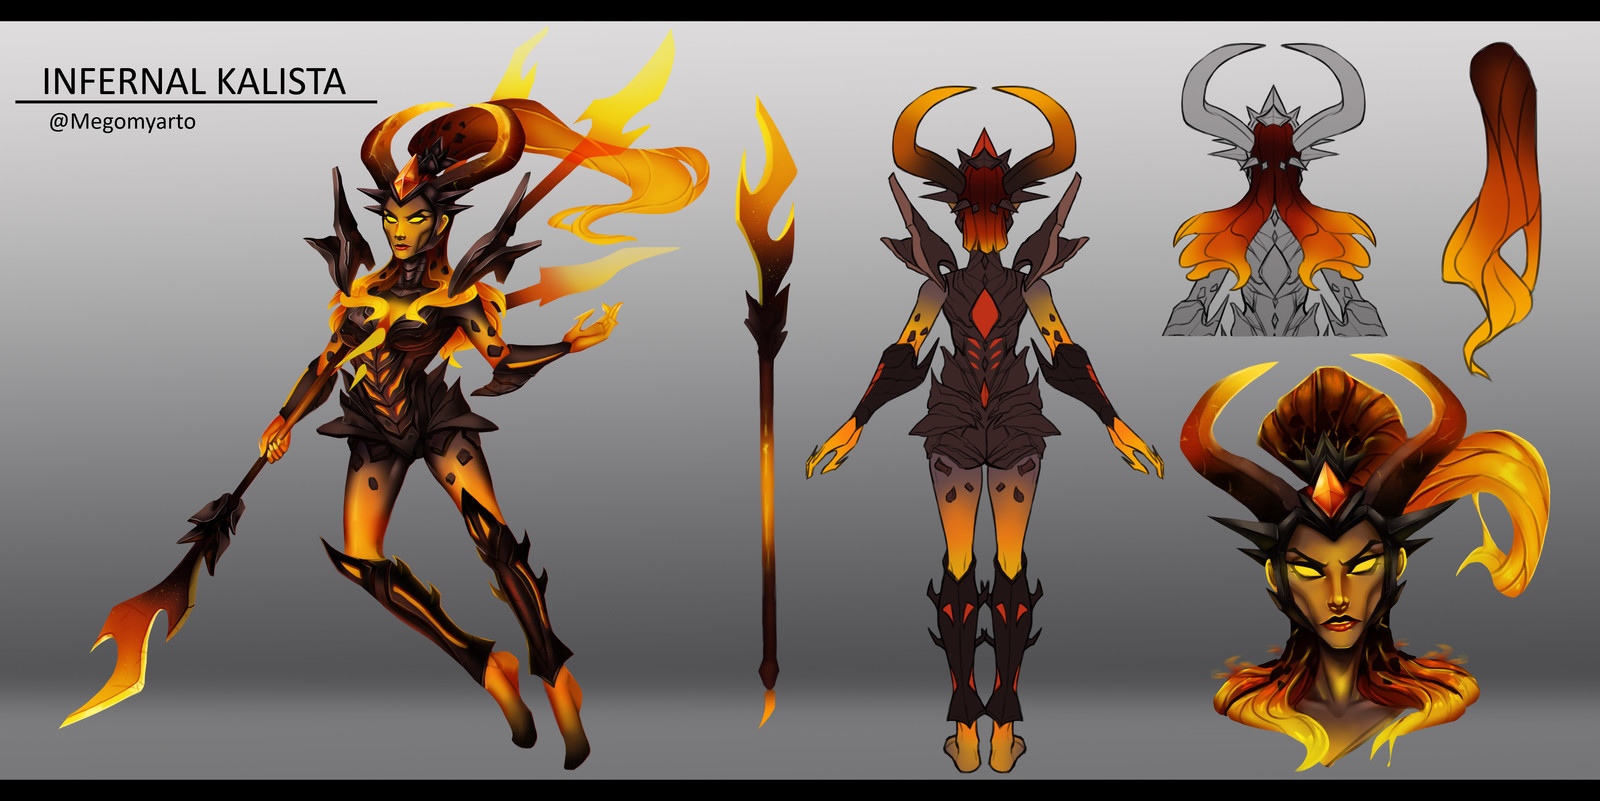 Infernal Kalista - Concept Art